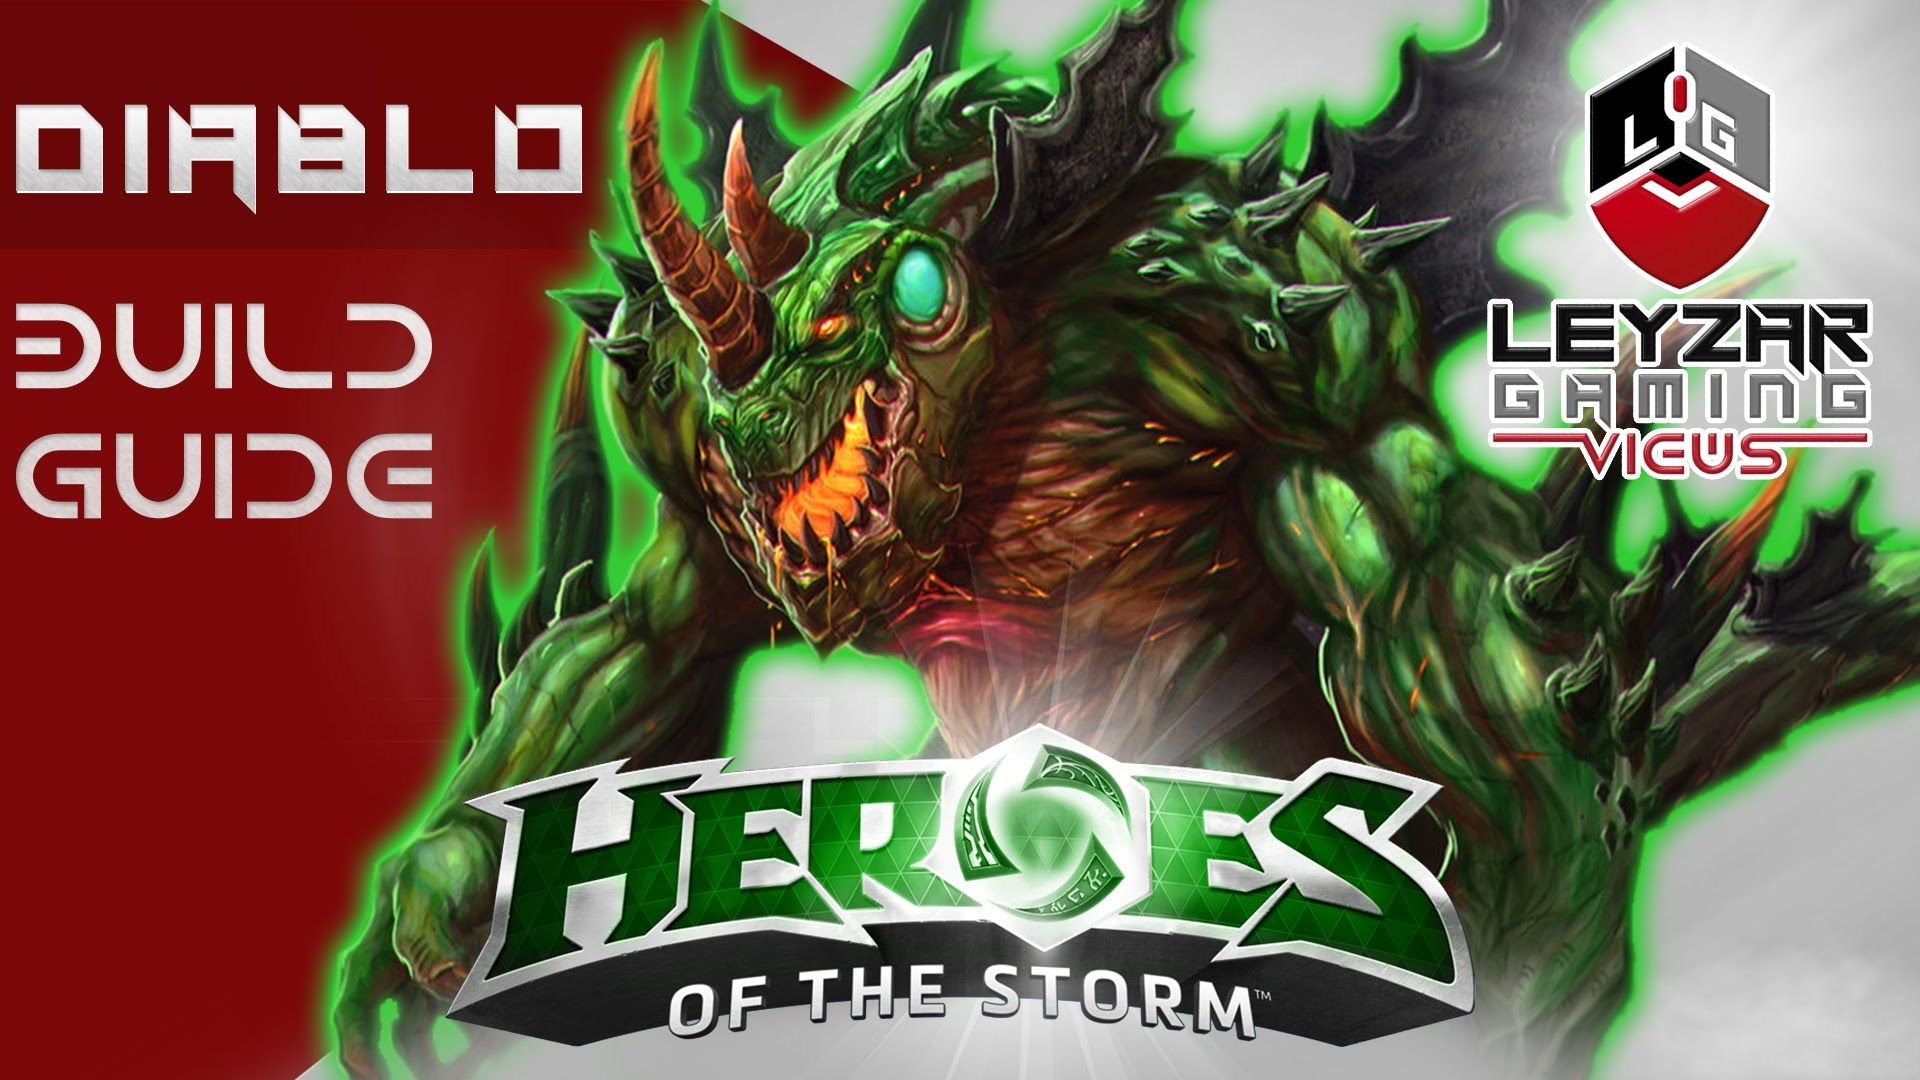 Heroes Of The Storm Gameplay Diablo Build Guide Kaijo Skin Hots Quick Match Heroes Of The Storm Diablo Gameplay Storm Aram champion builds and summoner lookups are just a click away. pinterest